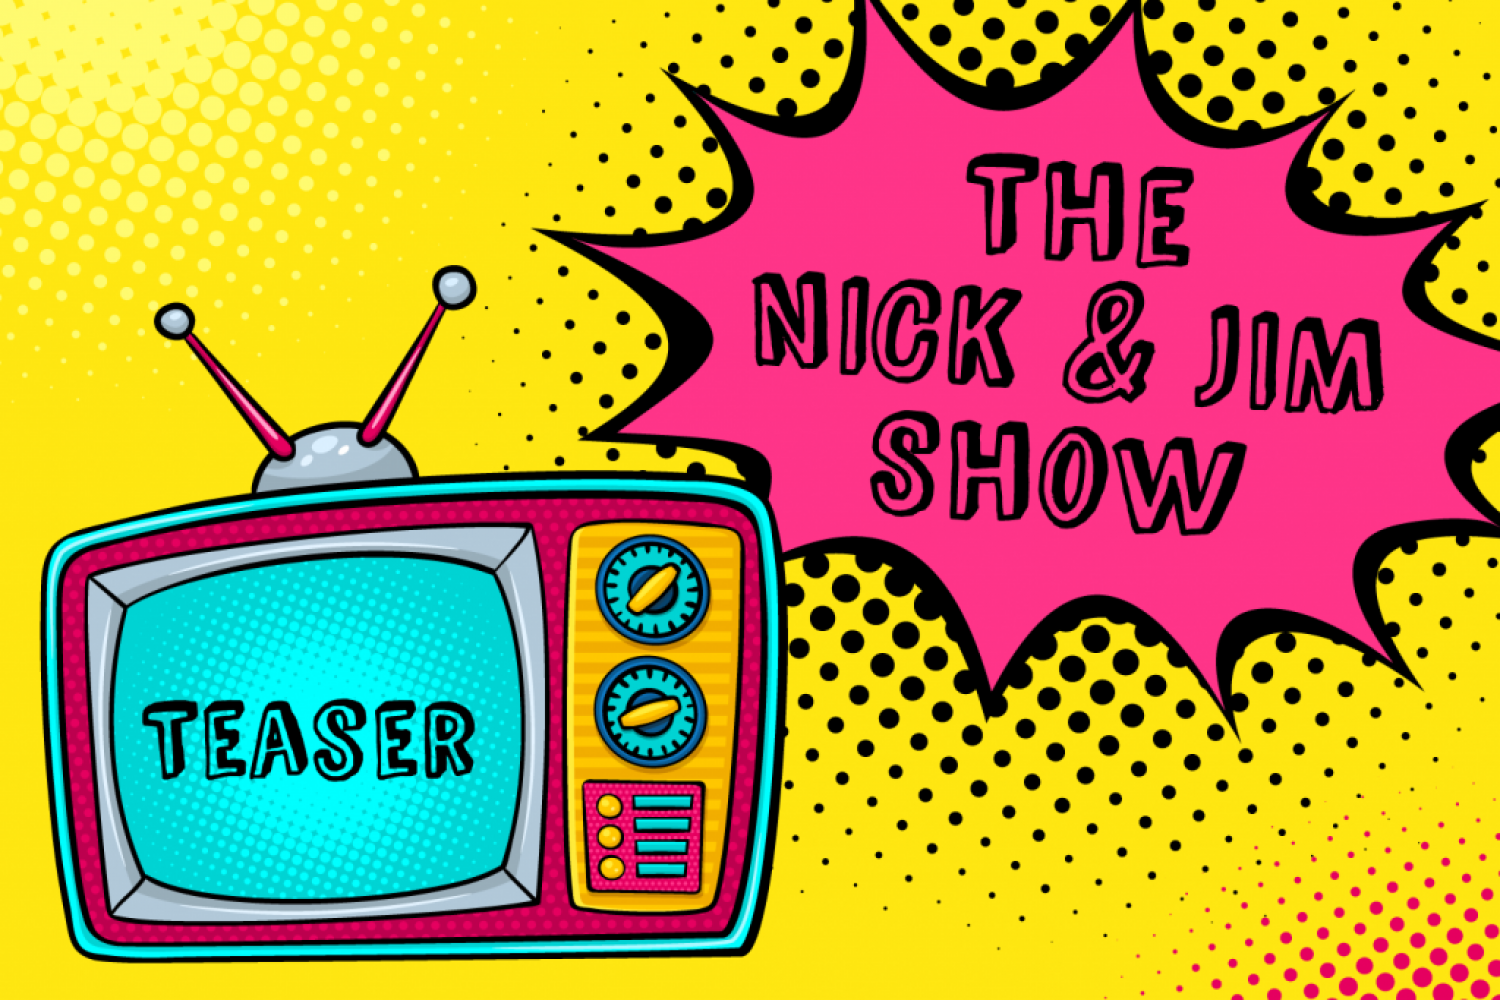 The-Nick-and-Jim-Show